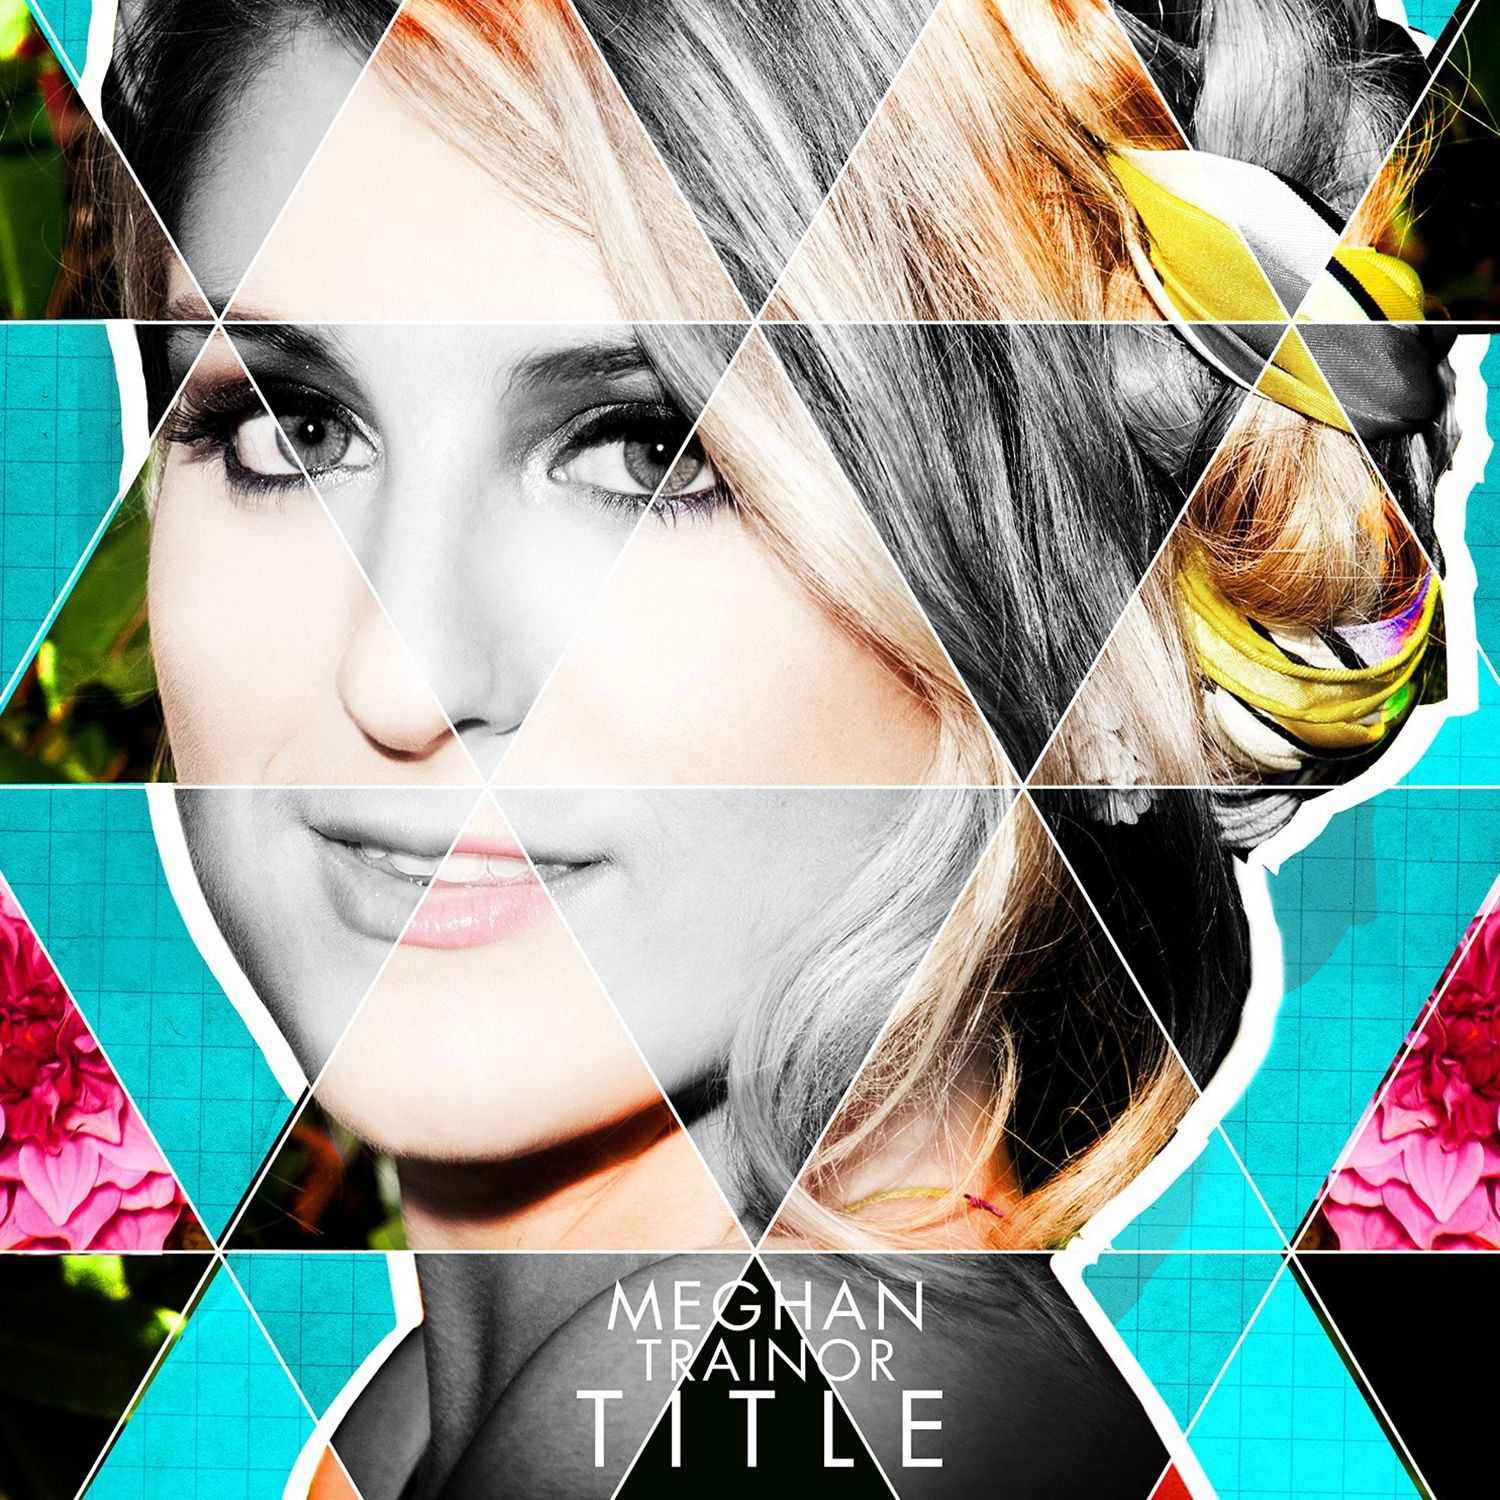 Meghan Trainor - Title EP album cover